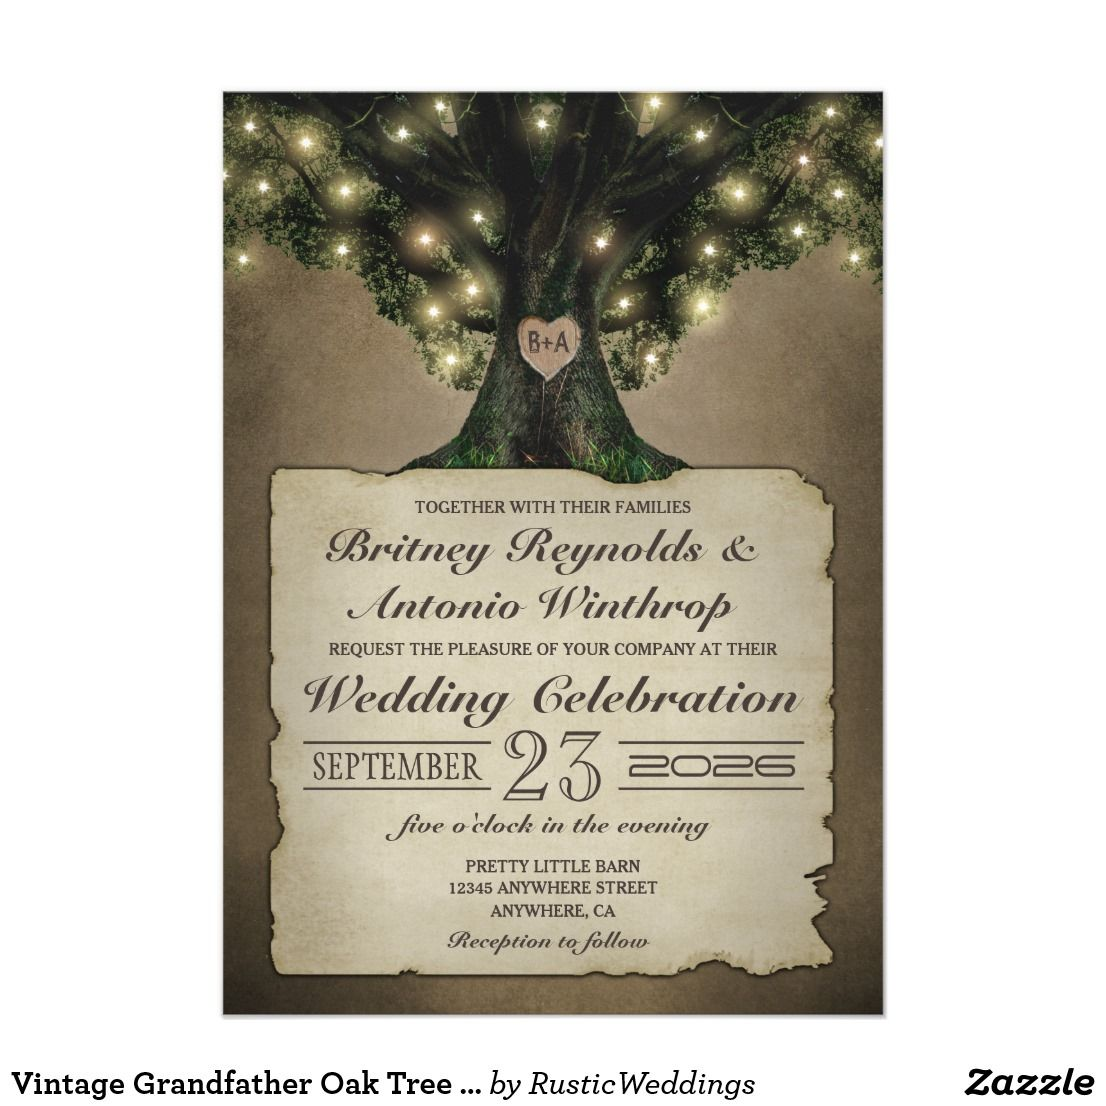 Vintage Grandfather Oak Tree Wedding Invitations | Pinterest ...